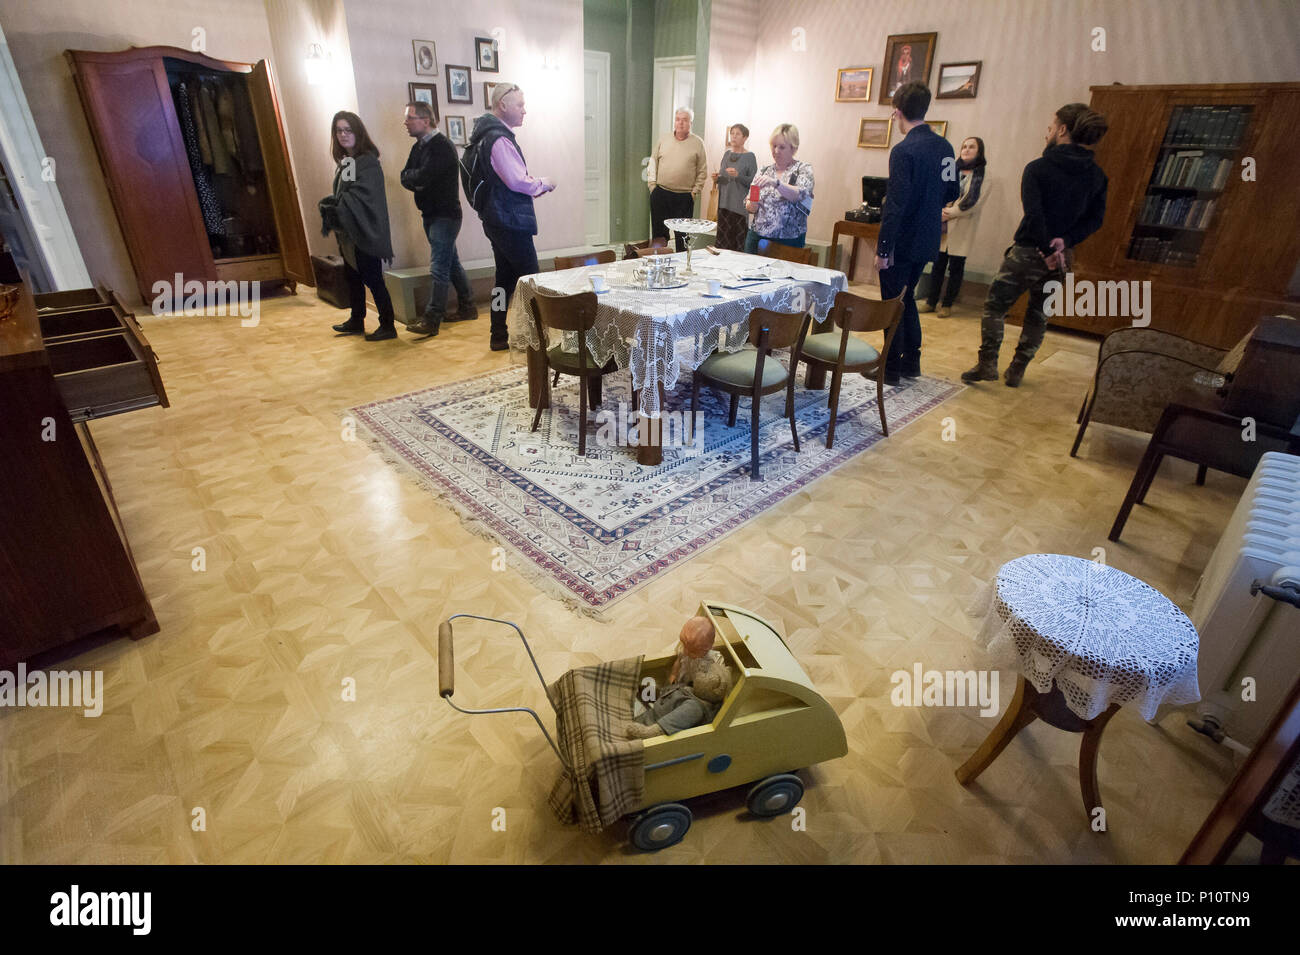 Pre war typical Polish flat as a part of exhibion in Museum of the Second World War in Gdansk, Poland. January 28th 2017 © Wojciech Strozyk / Alamy St - Stock Image